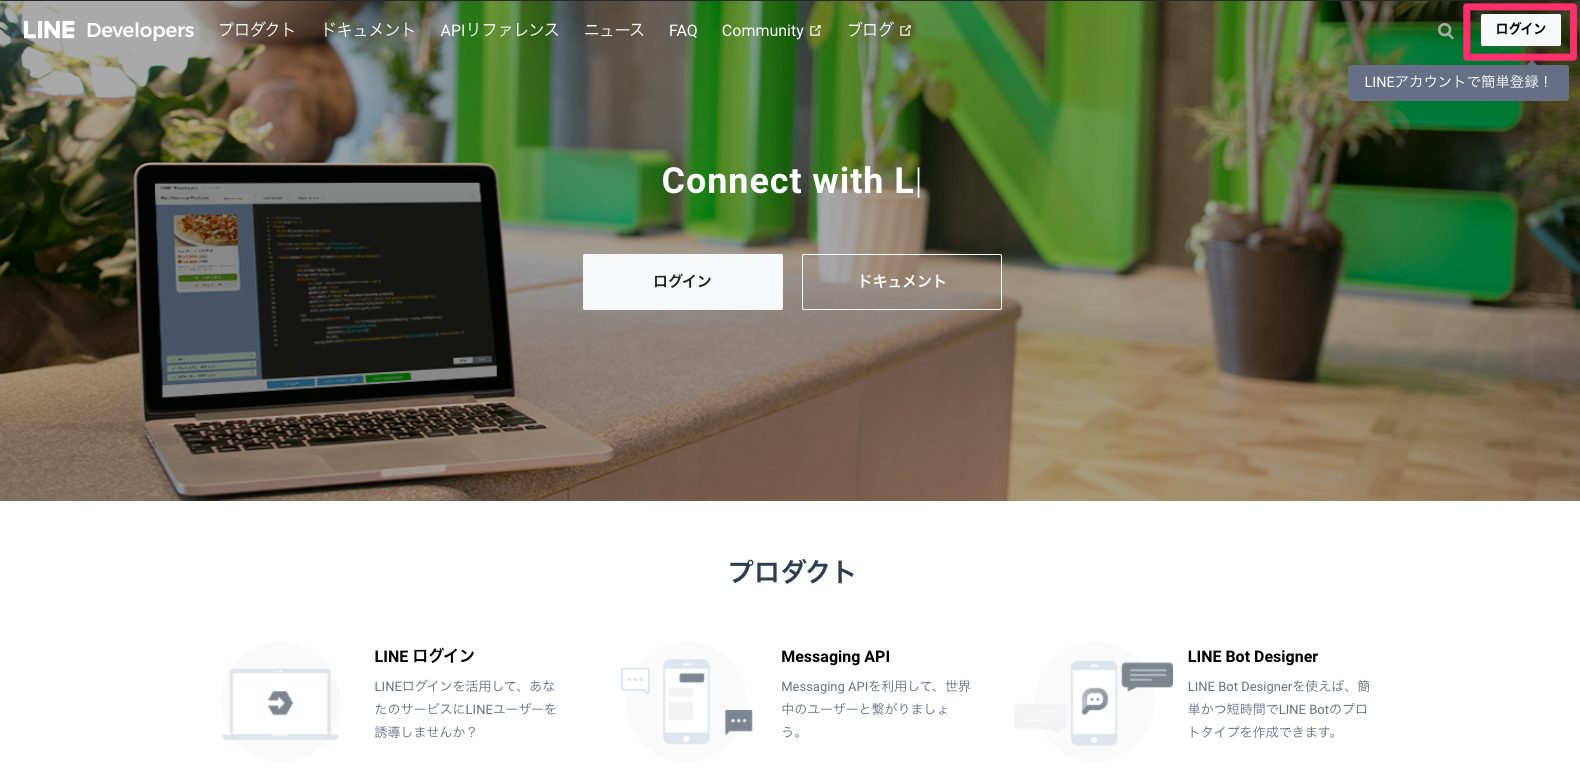 【LINE Developers】ログイン押下